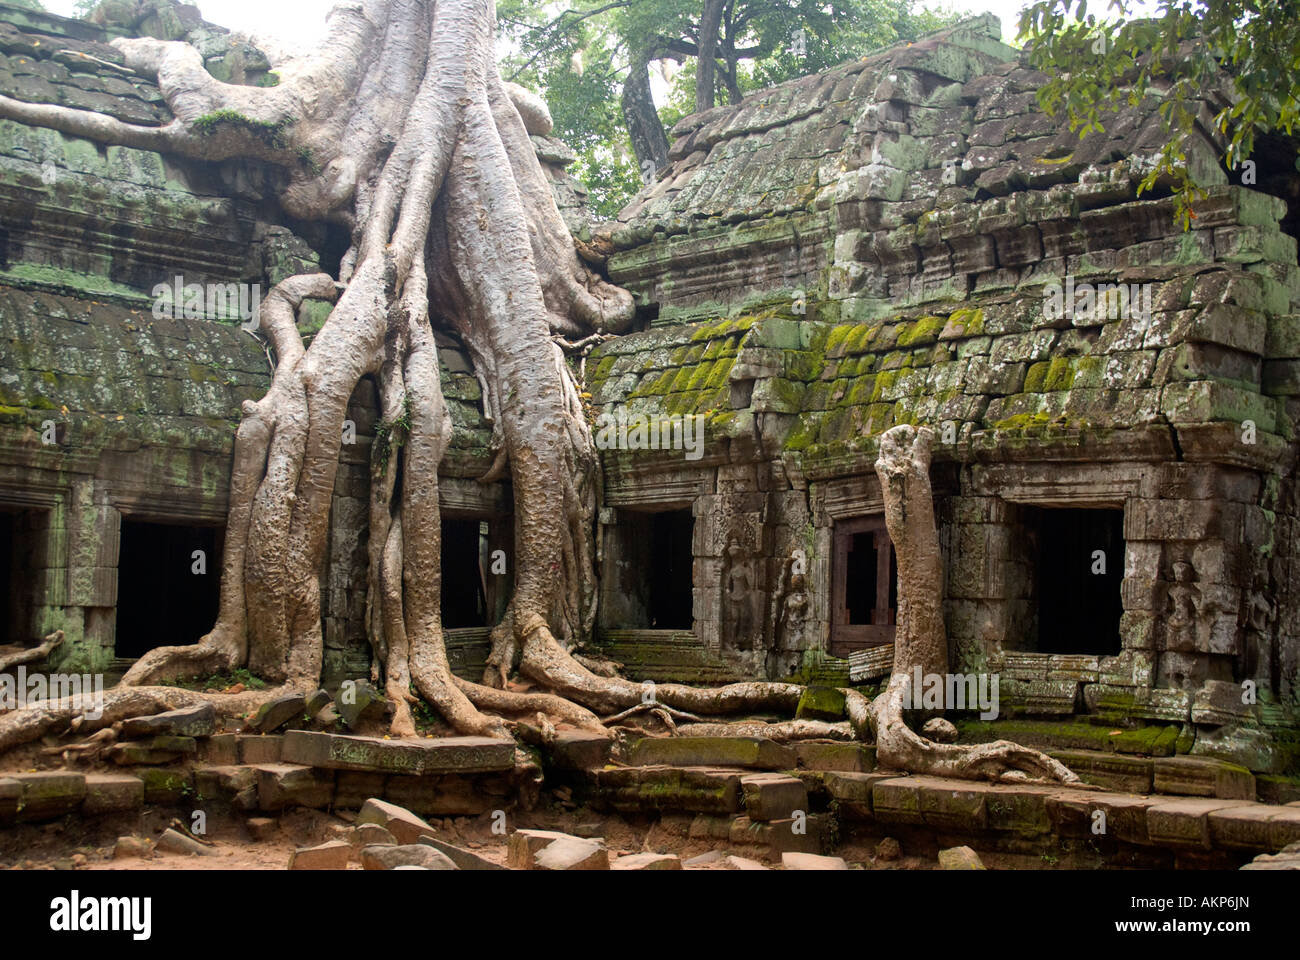 Ta Prohm Temple Ruins With Fig Tree Roots Growing On Wall Stock ...